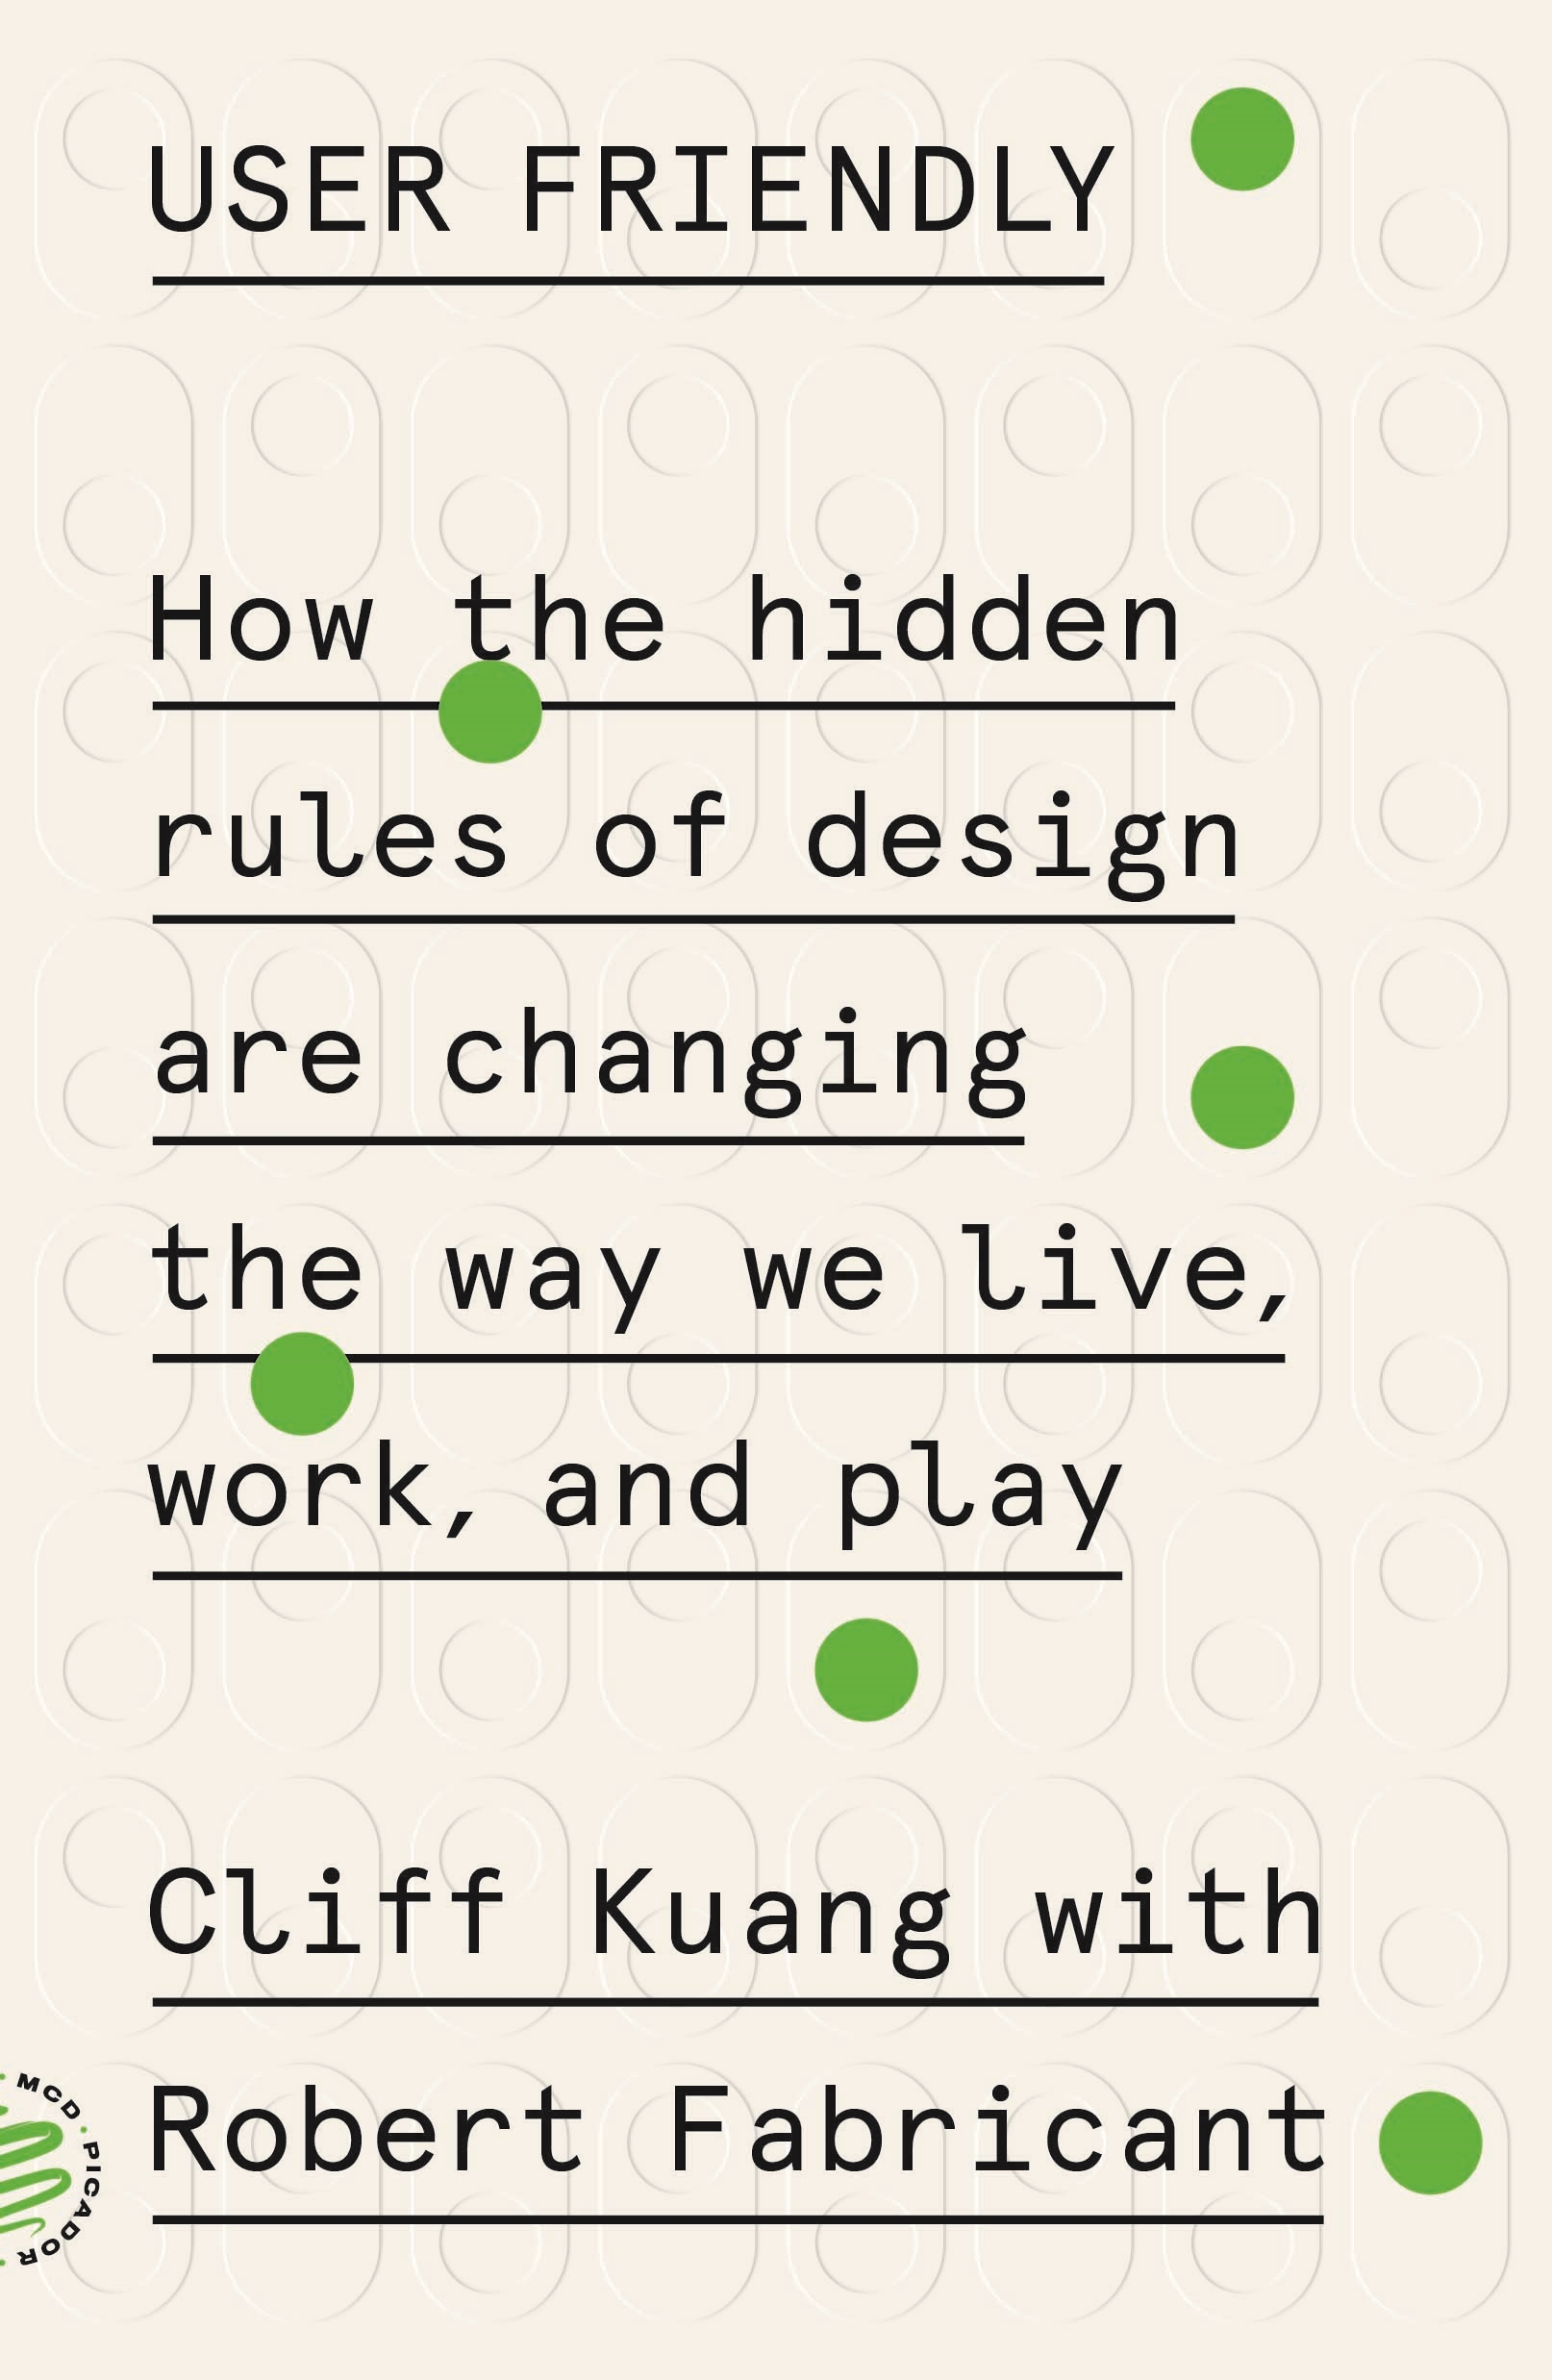 User friendly how the hidden rules of design are changing the way we live, work, and play